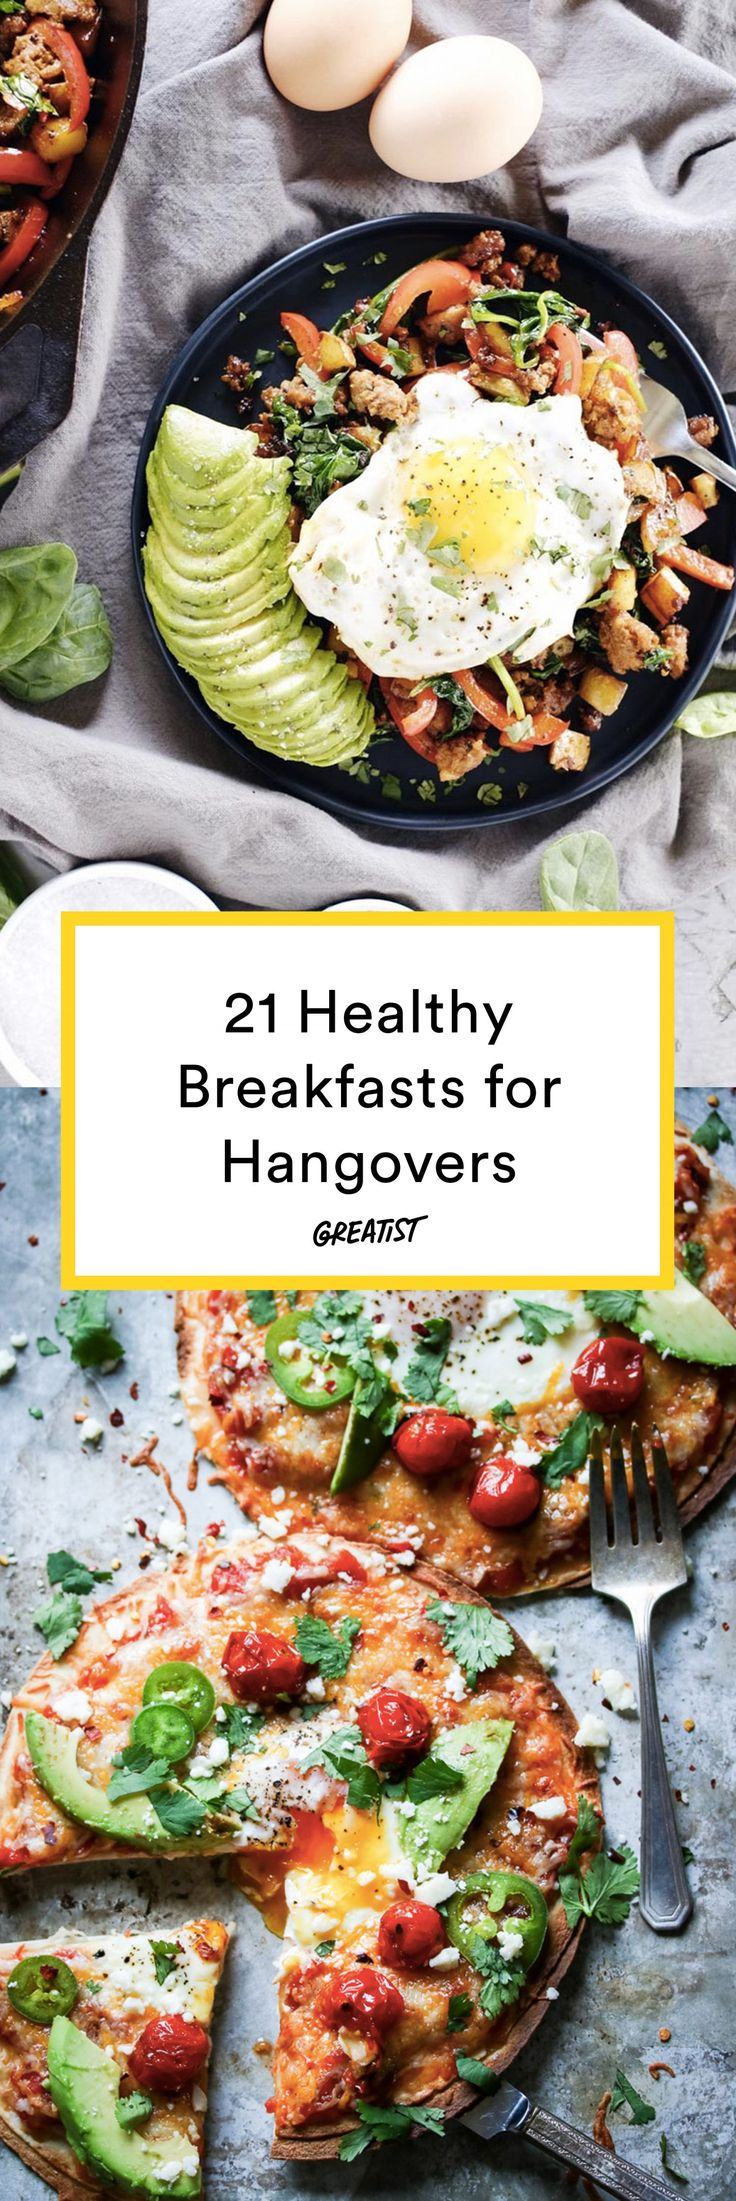 Take yourself from zero to (nearly a) hero, with just one bite. #greatist https://greatist.com/eat/breakfast-recipes-that-help-hangovers